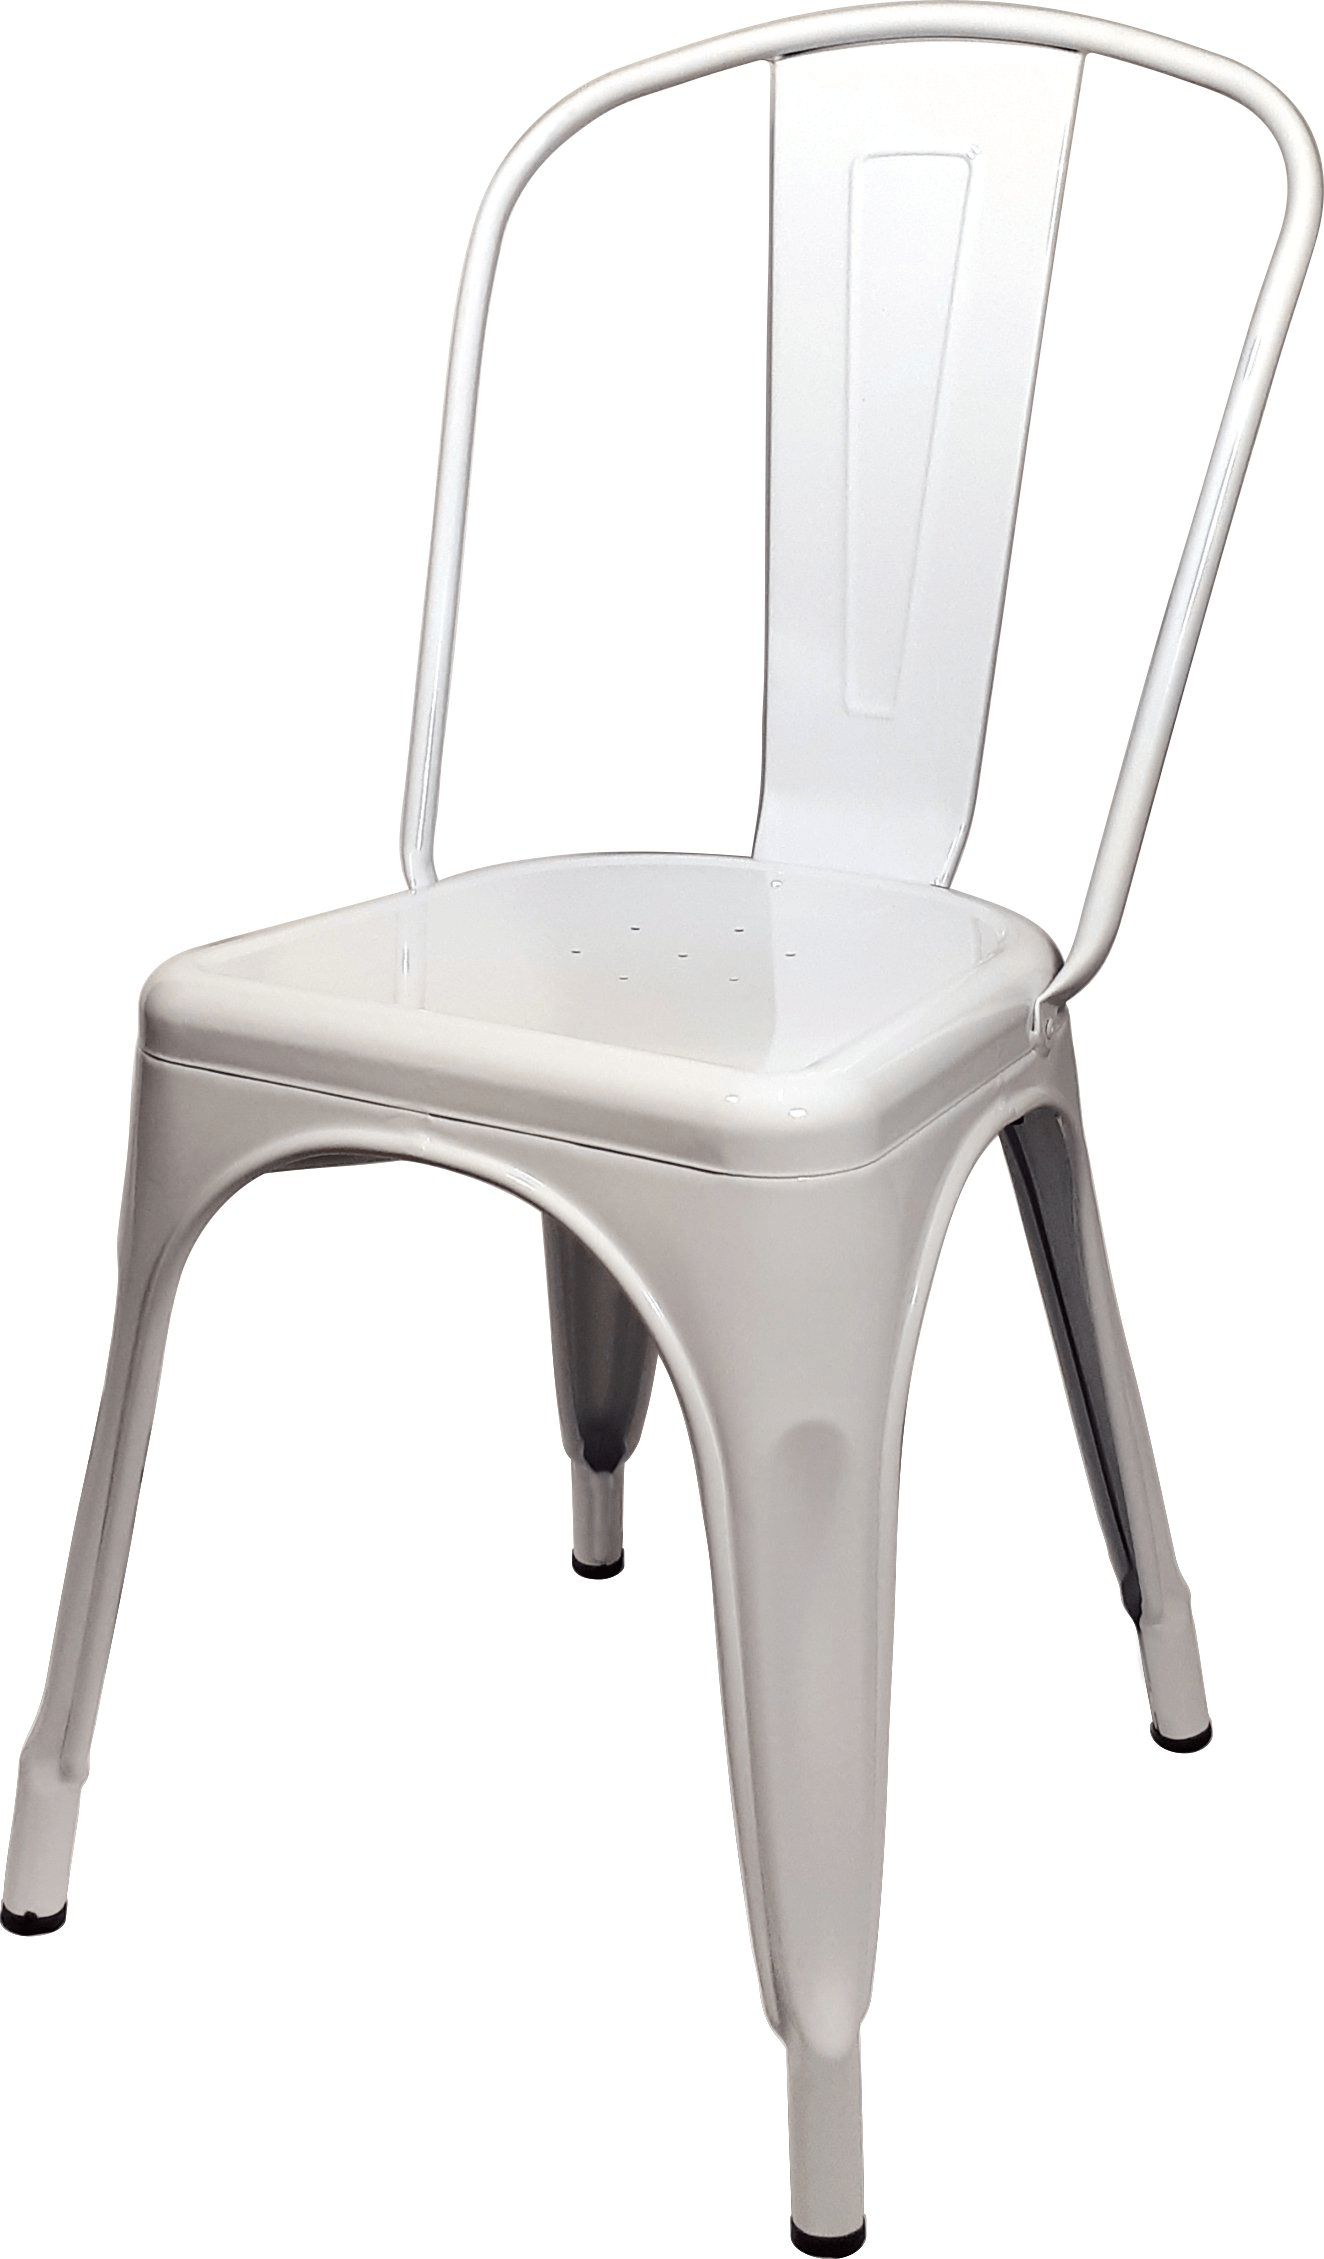 Tolix Replica Cafe Chair White Buy Online Afterpay